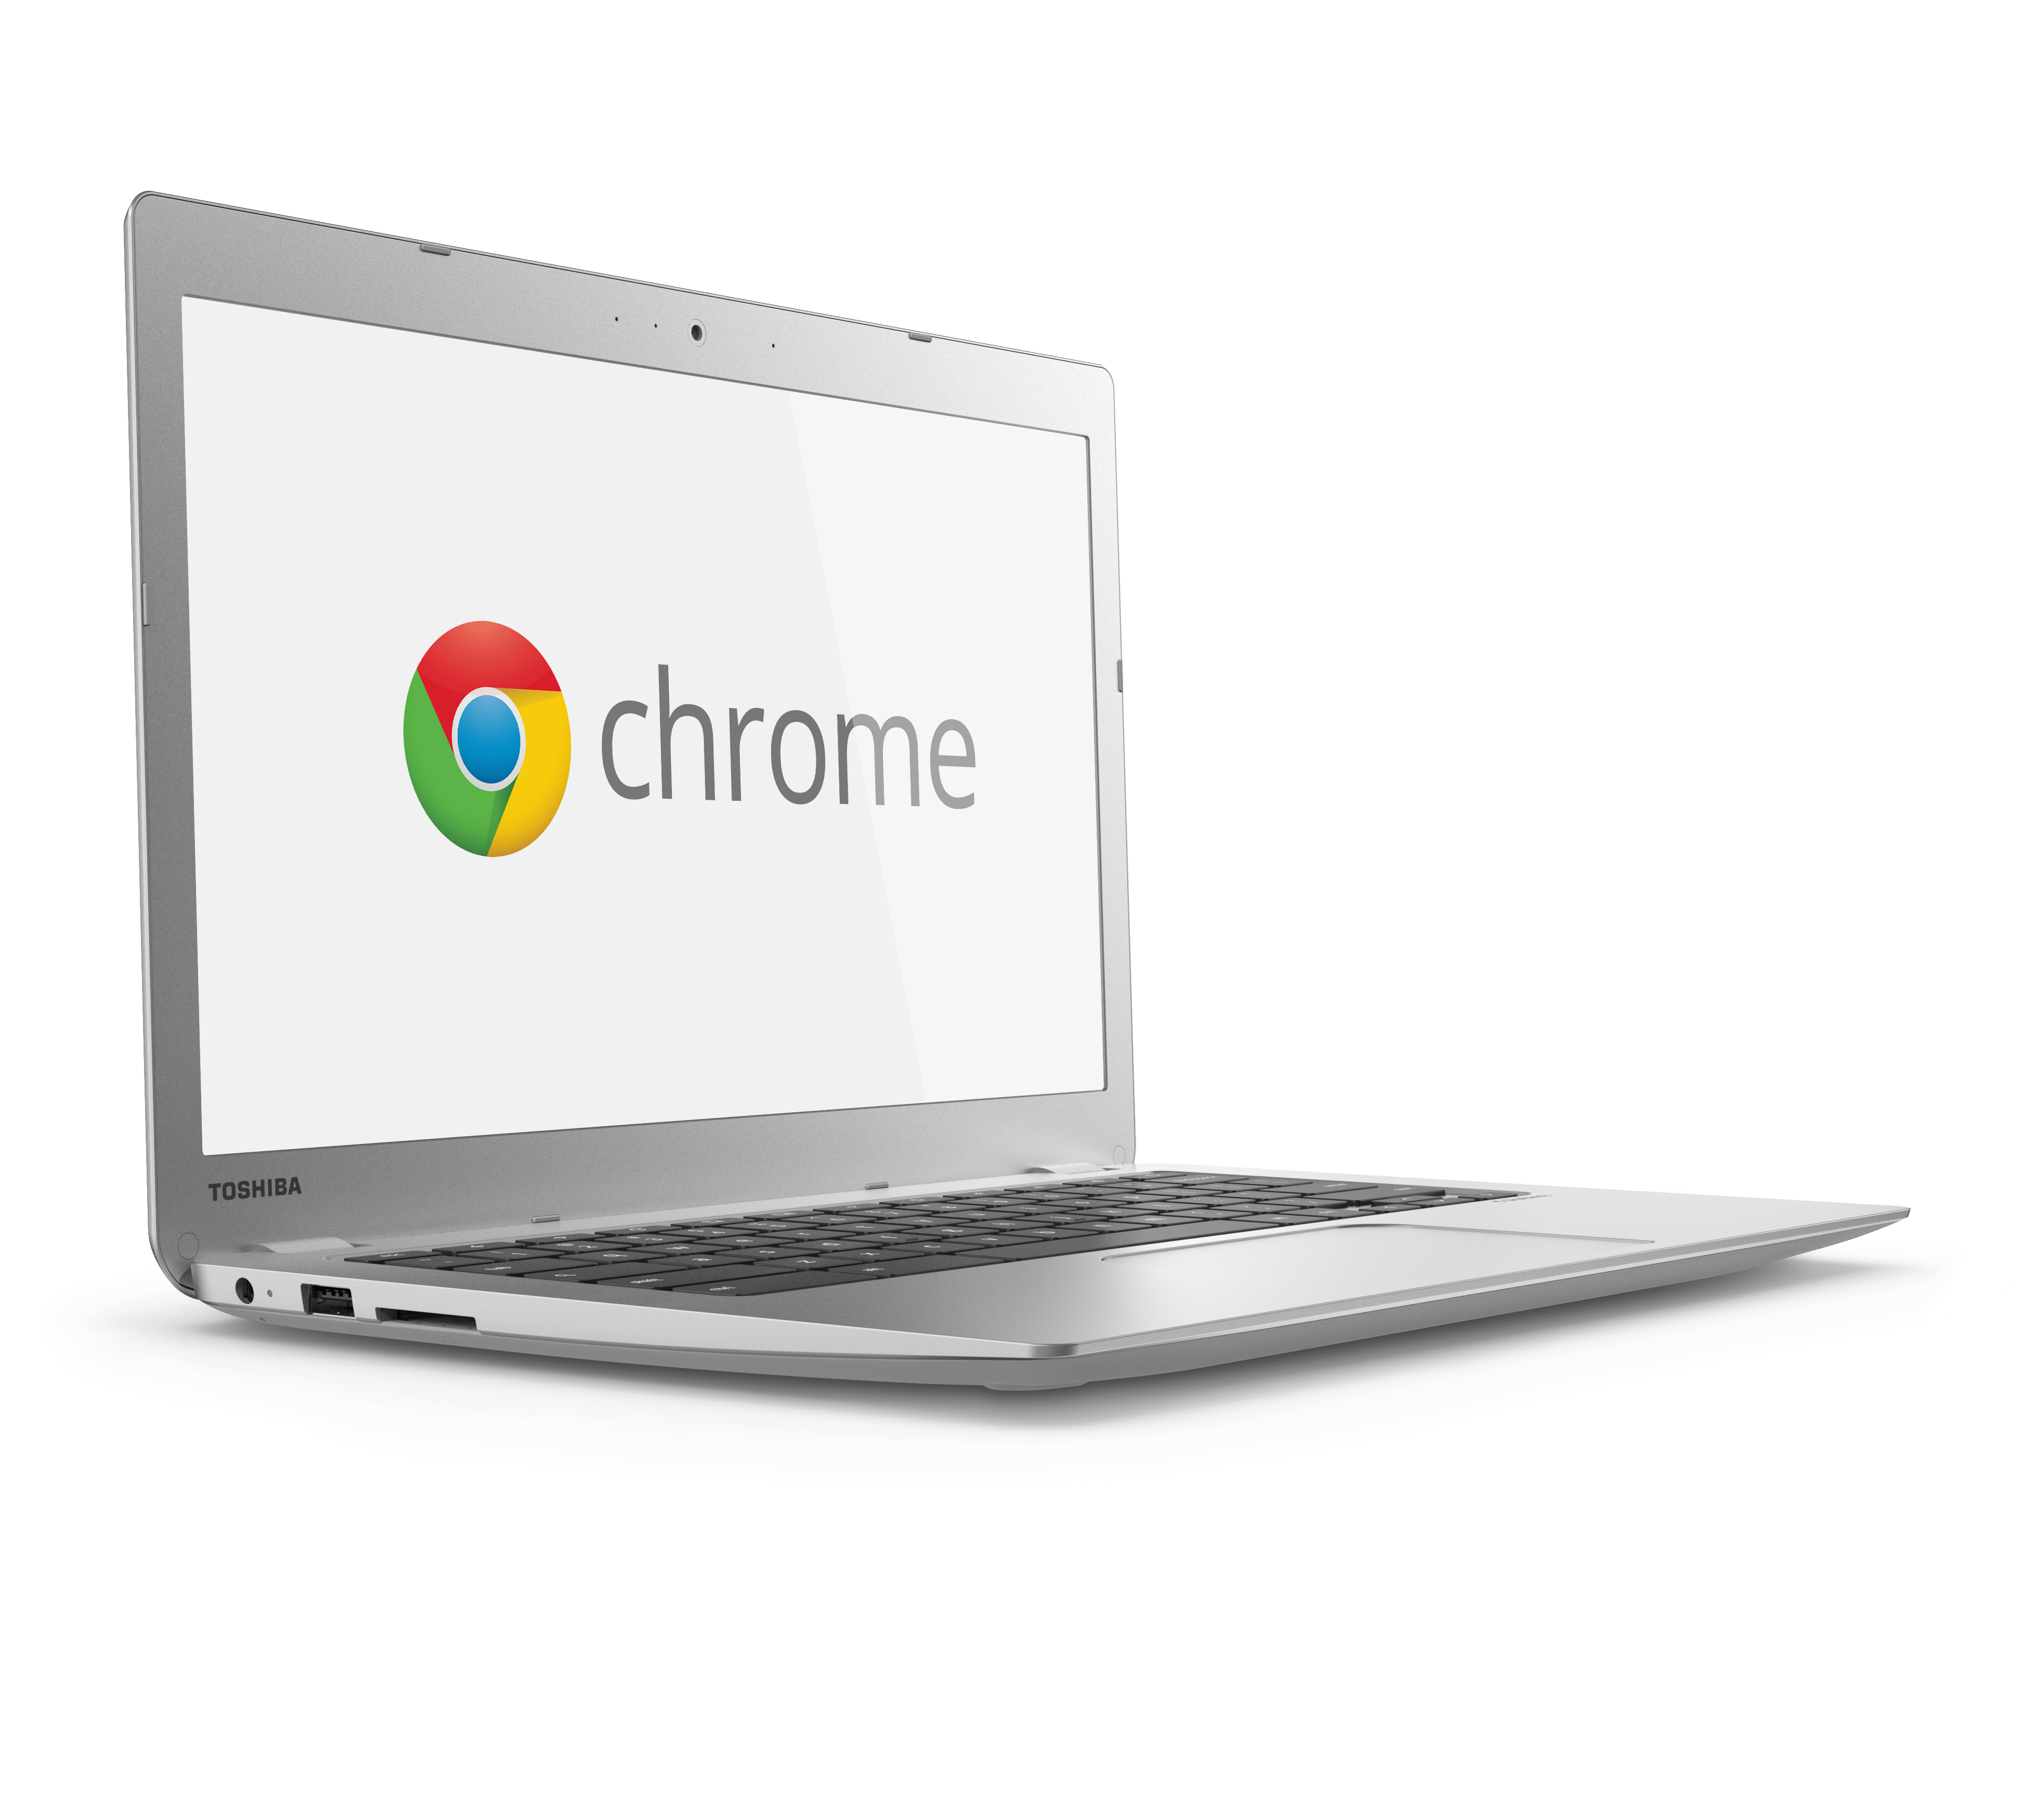 Toshiba Announces New Chromebooks Designed for Work and Play ...